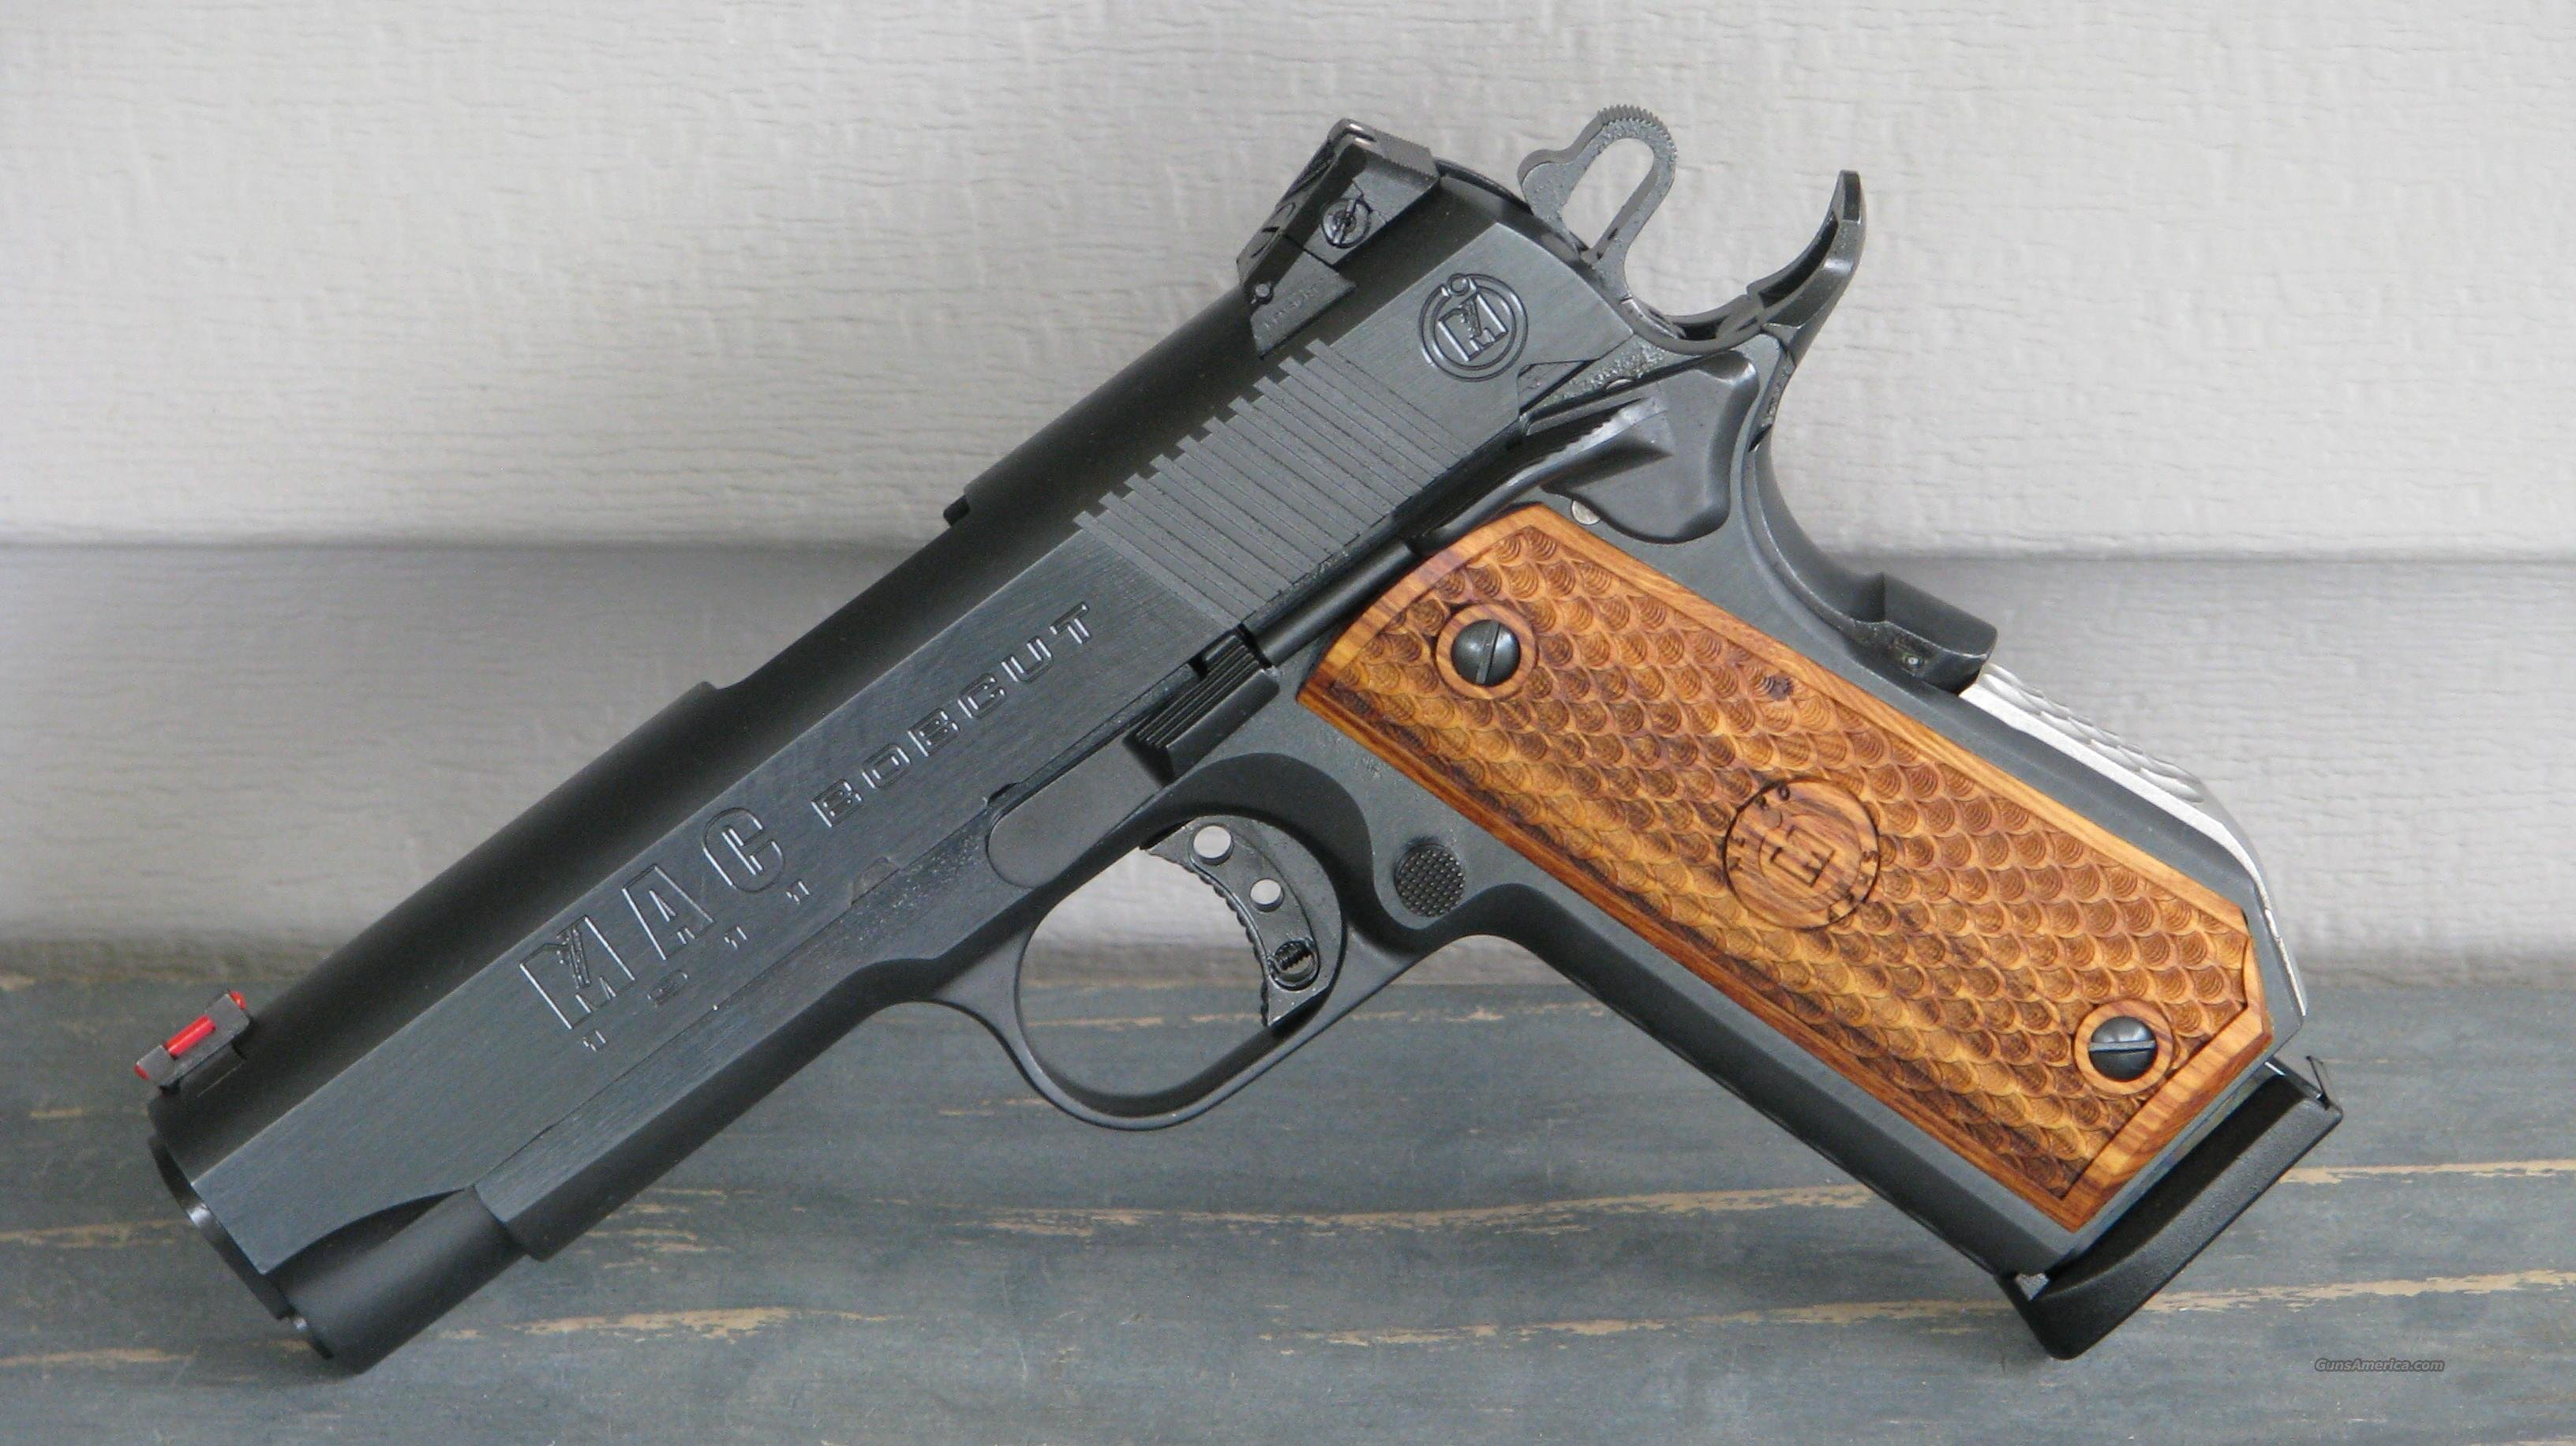 Metro Arms Bobcut MAC 1911 EASY PAY $112 M19BC45B   Guns > Pistols > Bersa Pistols